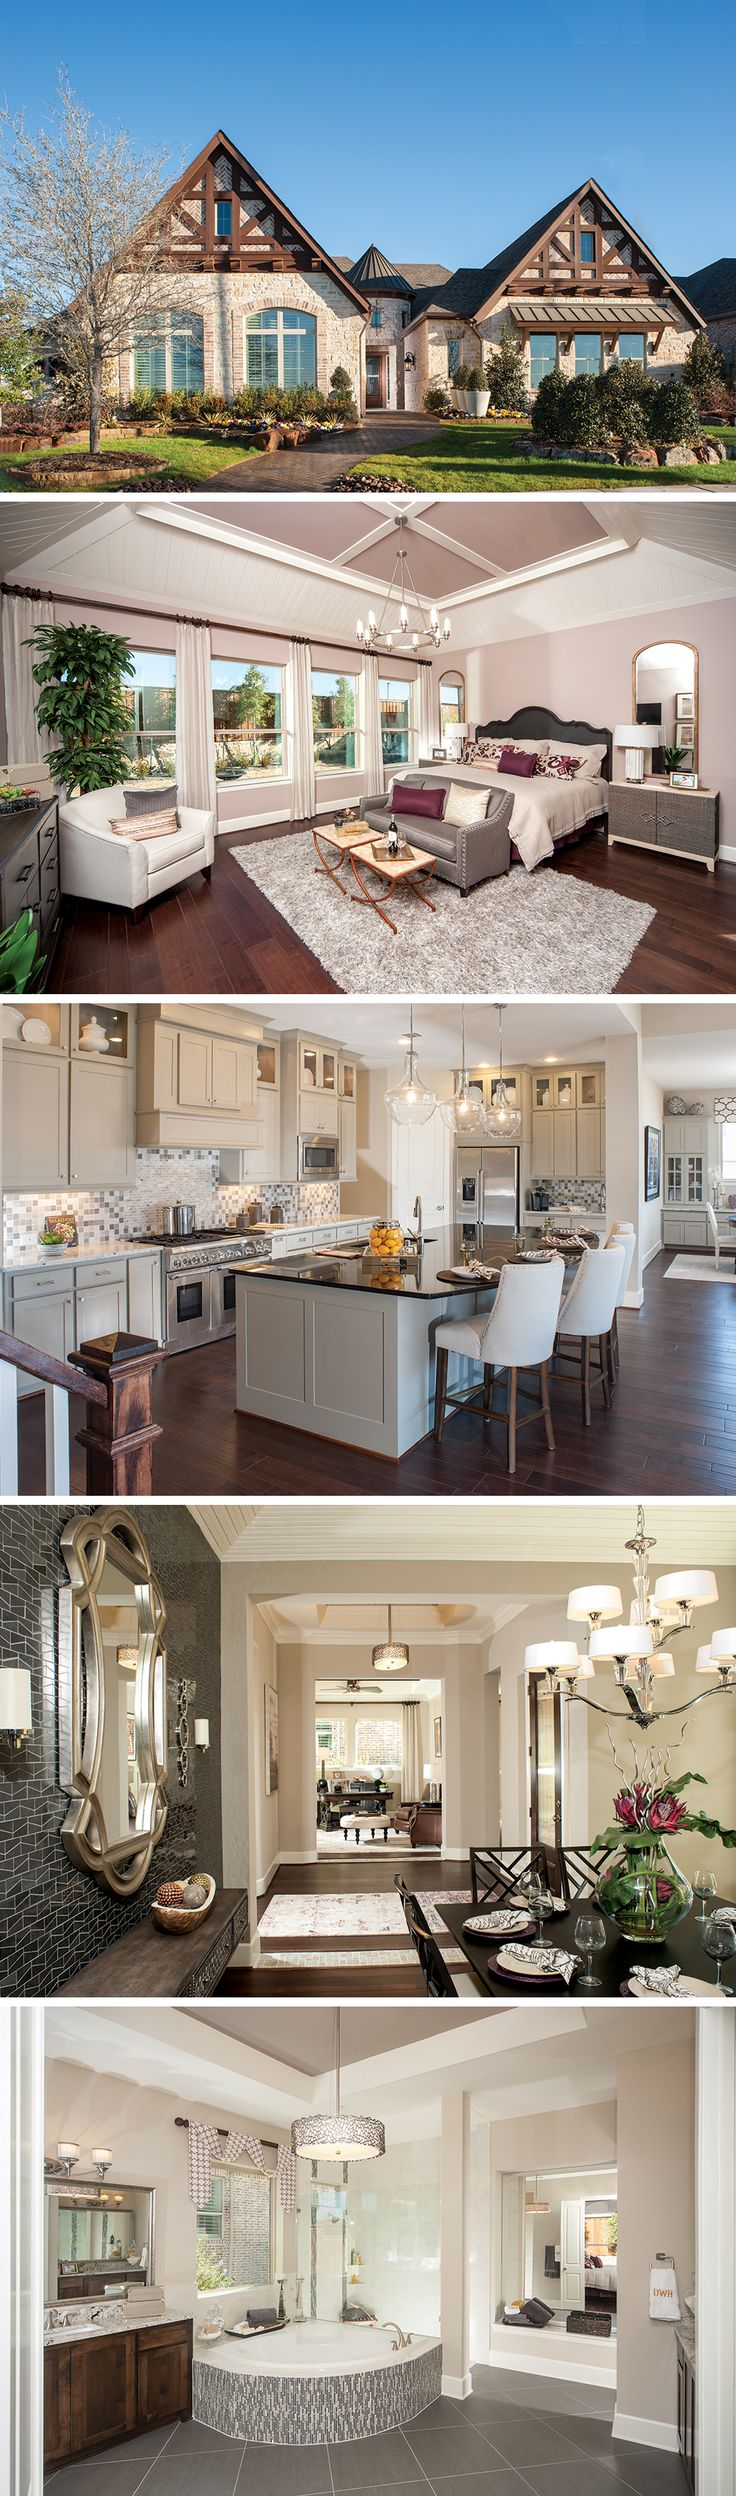 Huge bedroom dream homes pinterest - The Belleview By David Weekley Homes In Windsong Ranch Is A 4 Bedroom 3 Bathroom Home That Features An Open Kitchen Layout Large Wooden Ceiling Beams